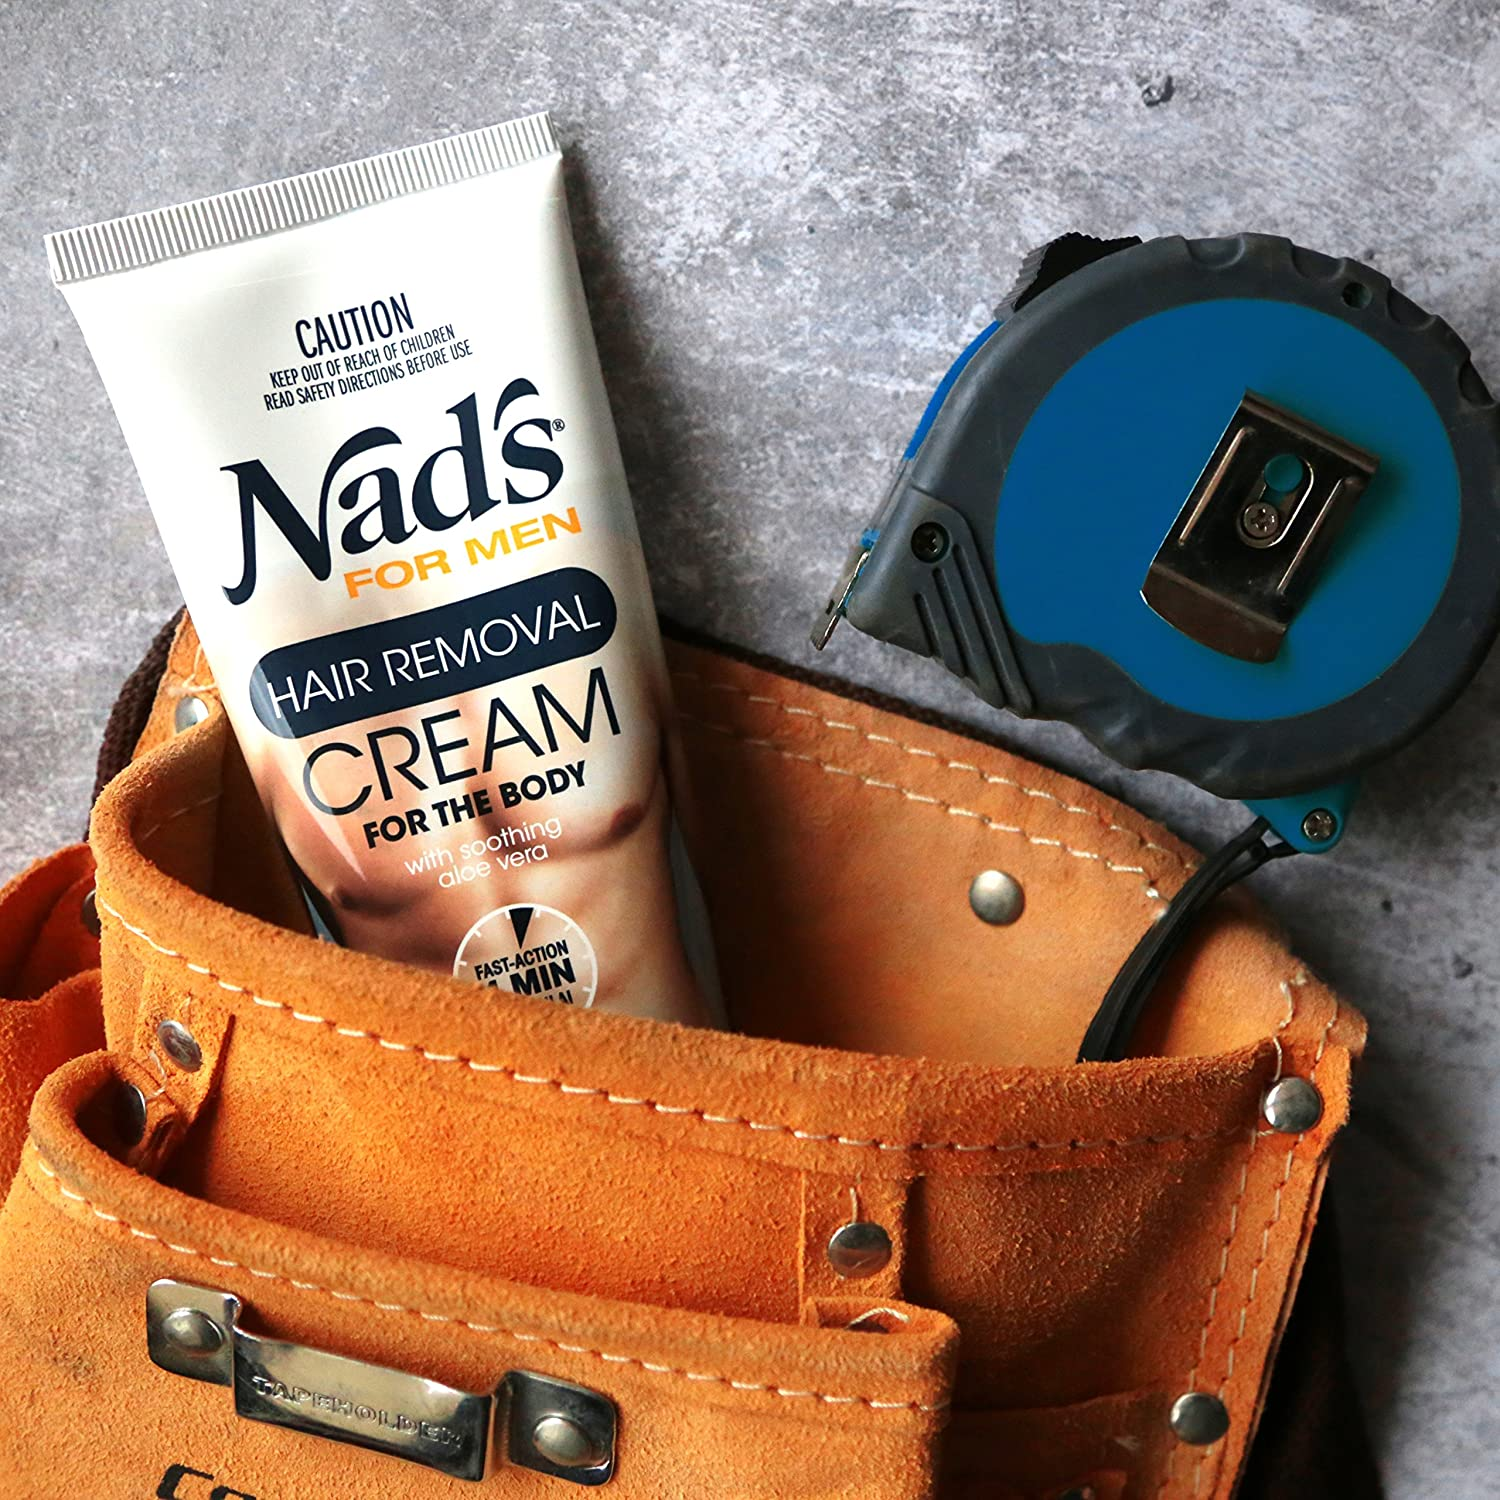 Nads For Men Hair Removal Cream 68 Oz Bath Pure Baby Hand Ampamp Mouth Wipes 10amp039s Buy 2 Get 1 Free Aloe Vera Products Beauty